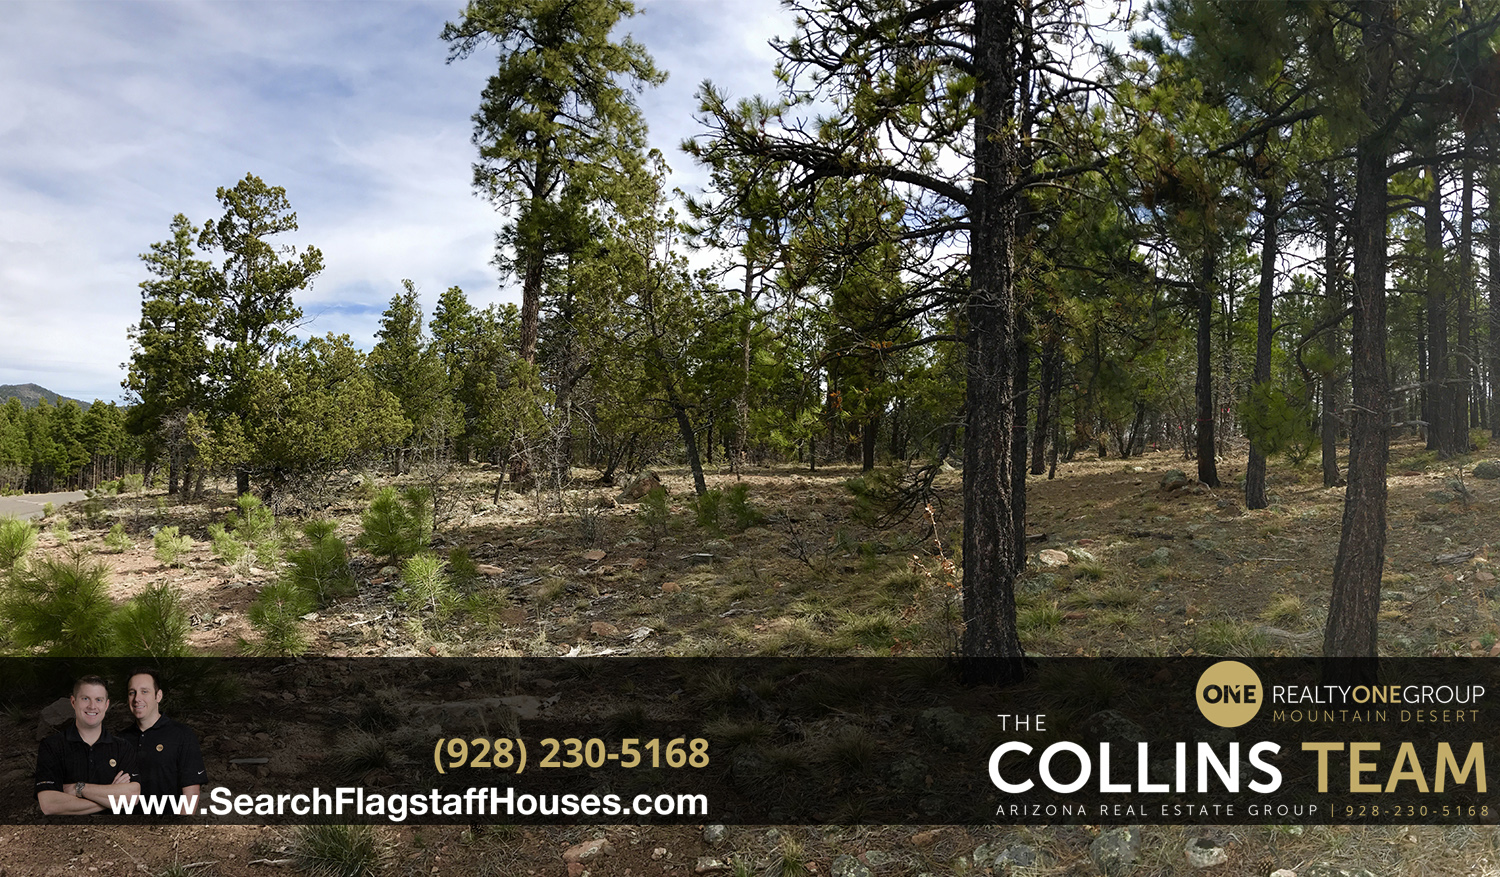 Lots for Sale in Williams AZ